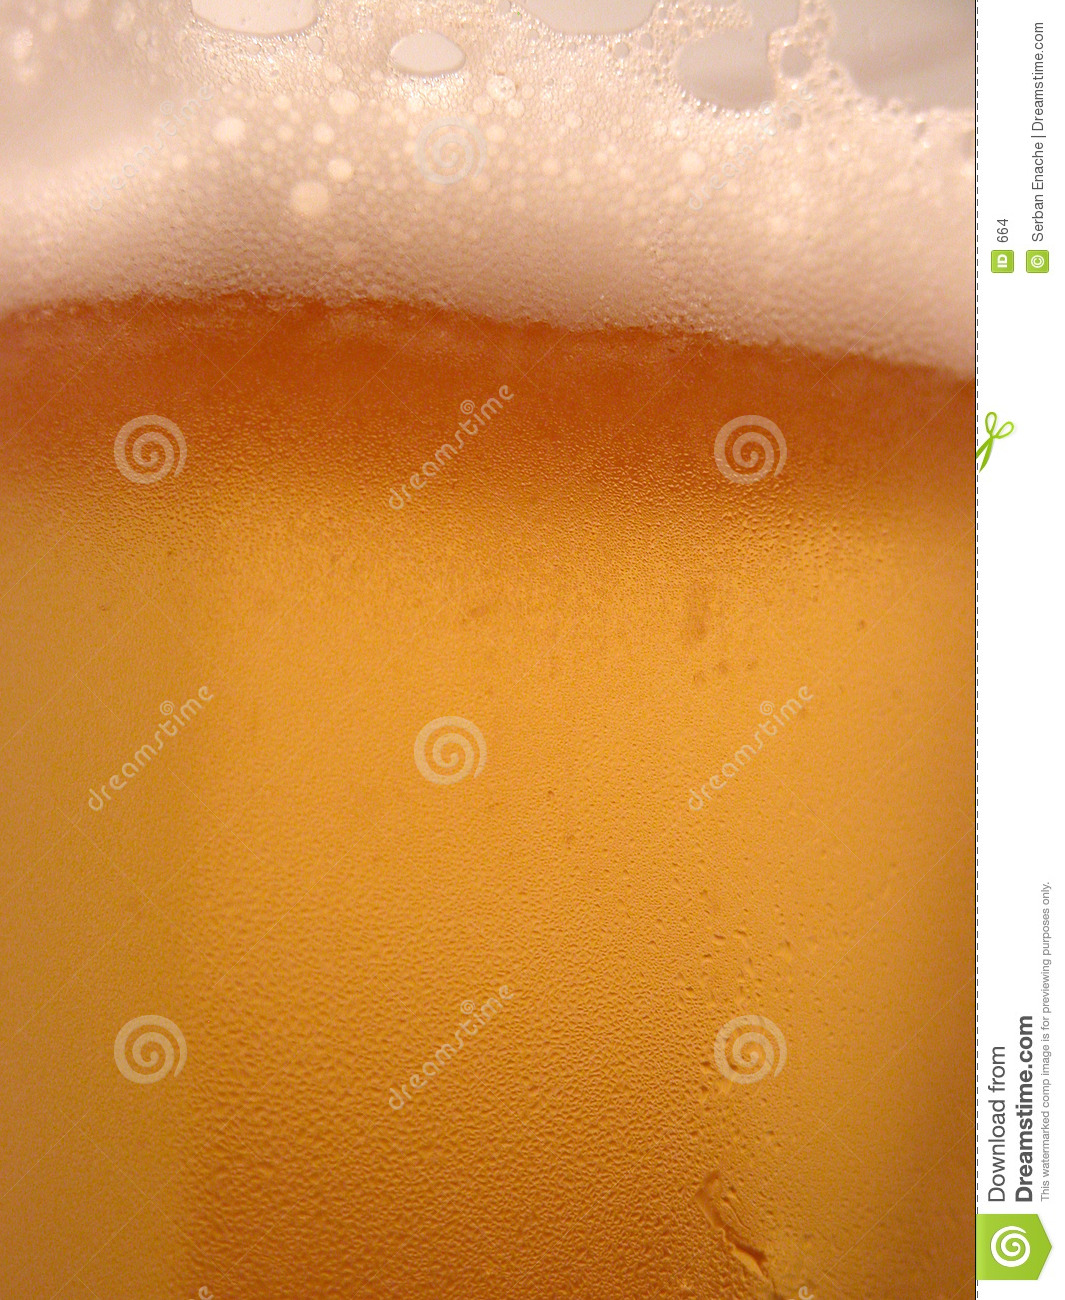 De close-up van het bier